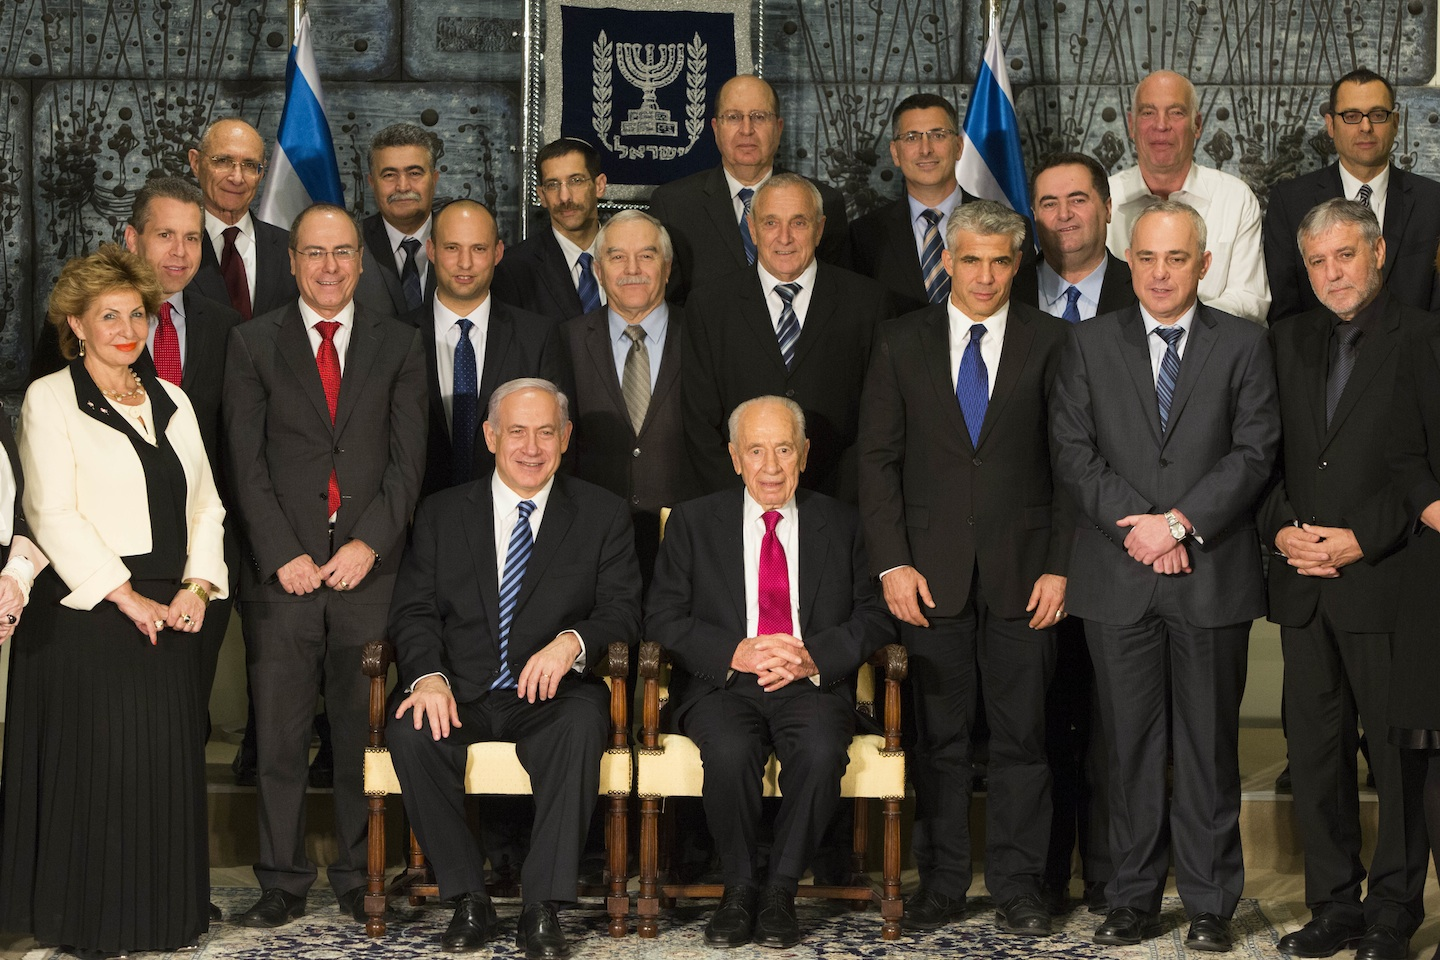 Click photo to download. Caption: Israeli President Shimon Peres (C, seated) sits next to Prime Minister Benjamin Netanyahu (L, seated) as they pose for a group photo together with the ministers of the new Israeli government, in Jerusalem, on March 18, 2013. The new government comprises four parties: Prime Minister Benjamin Netanyahu's Likud-Beiteinu alliance, Naftali Bennett's Jewish Home, Yair Laipd' Yesh Atid, and Tzipi Livni's Hatnuah. Credit: Yonatan Sindel/Flash90.